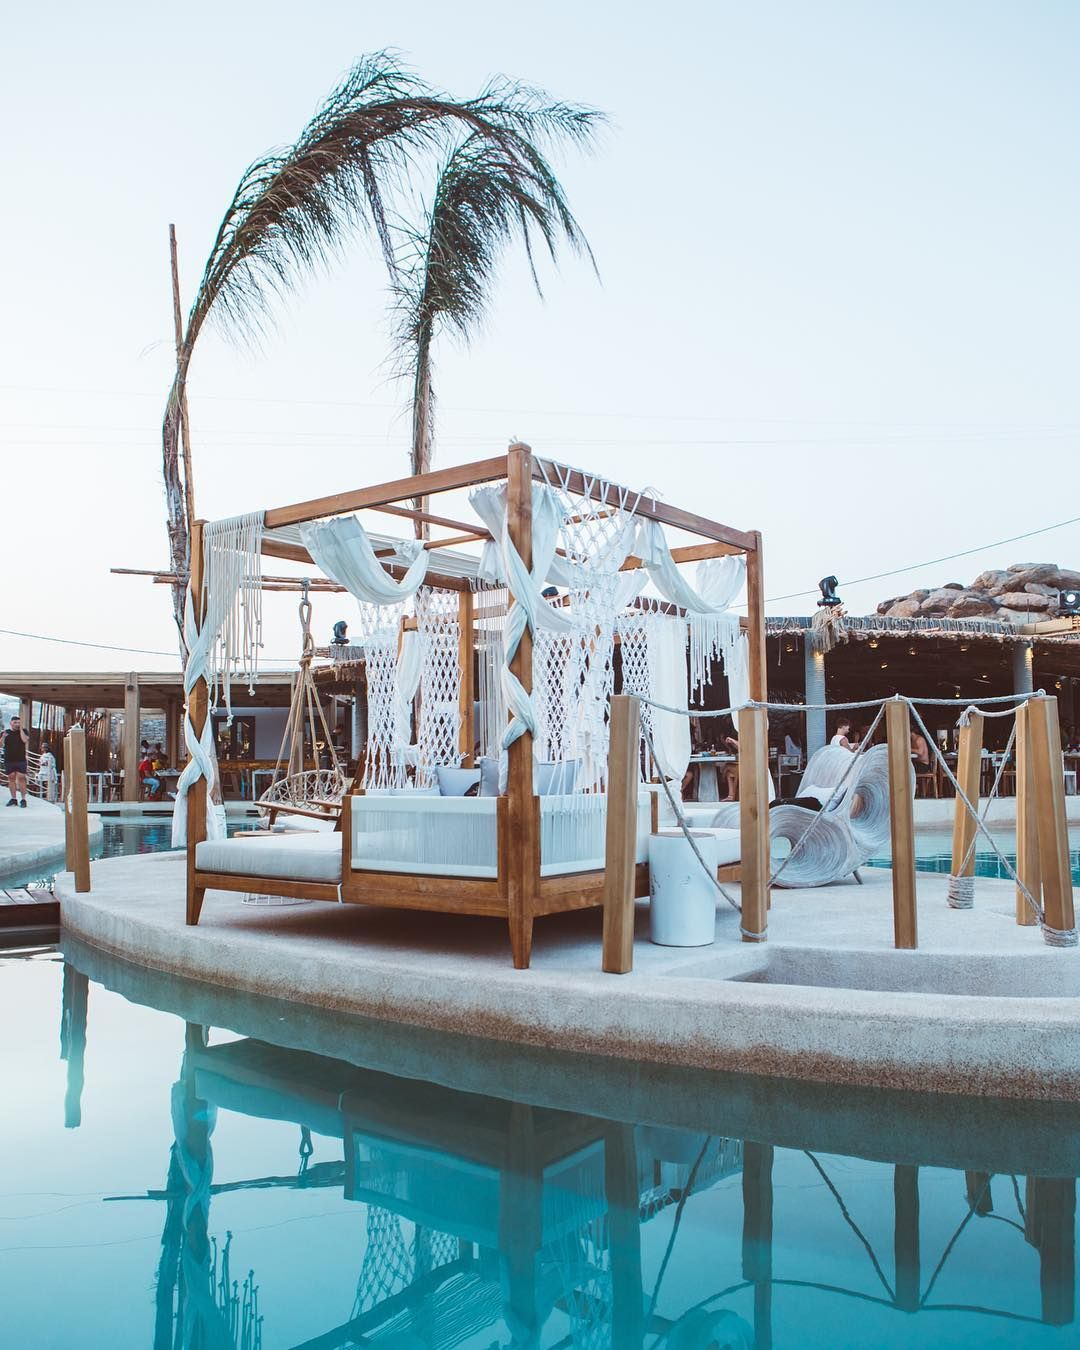 Meet Mix Or Retreat At Our Endless Salt Water Pool Organically Surrounded By Private Islands With Subterranean Suites Sant Saltwater Pool Pool Pool Cabana